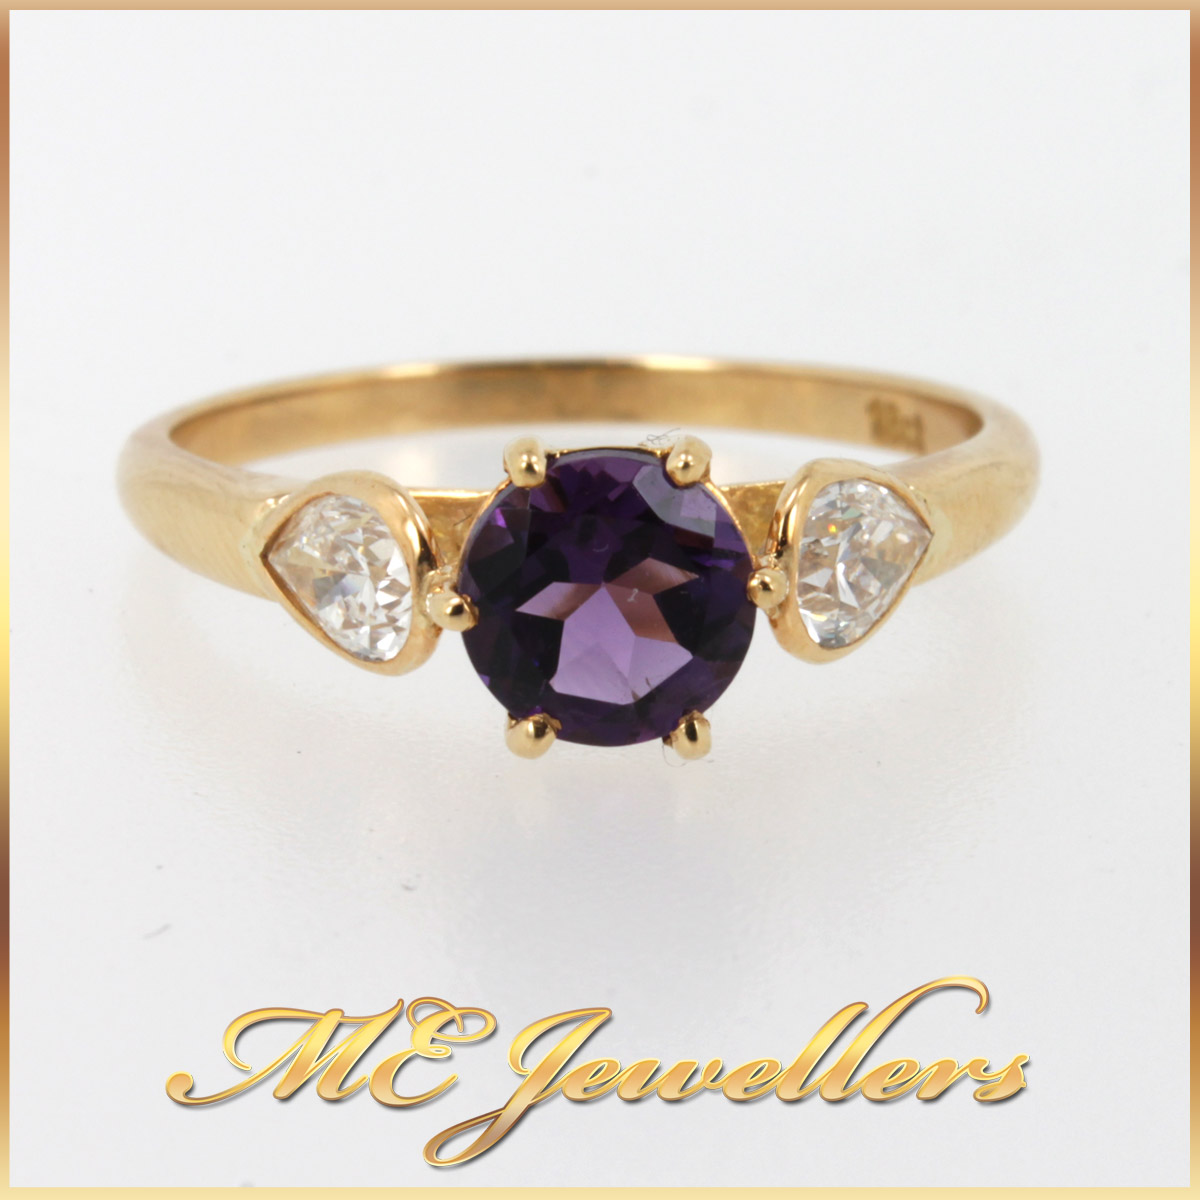 295 Amethyst Ring With Diamond In 18K Yellow Gold main